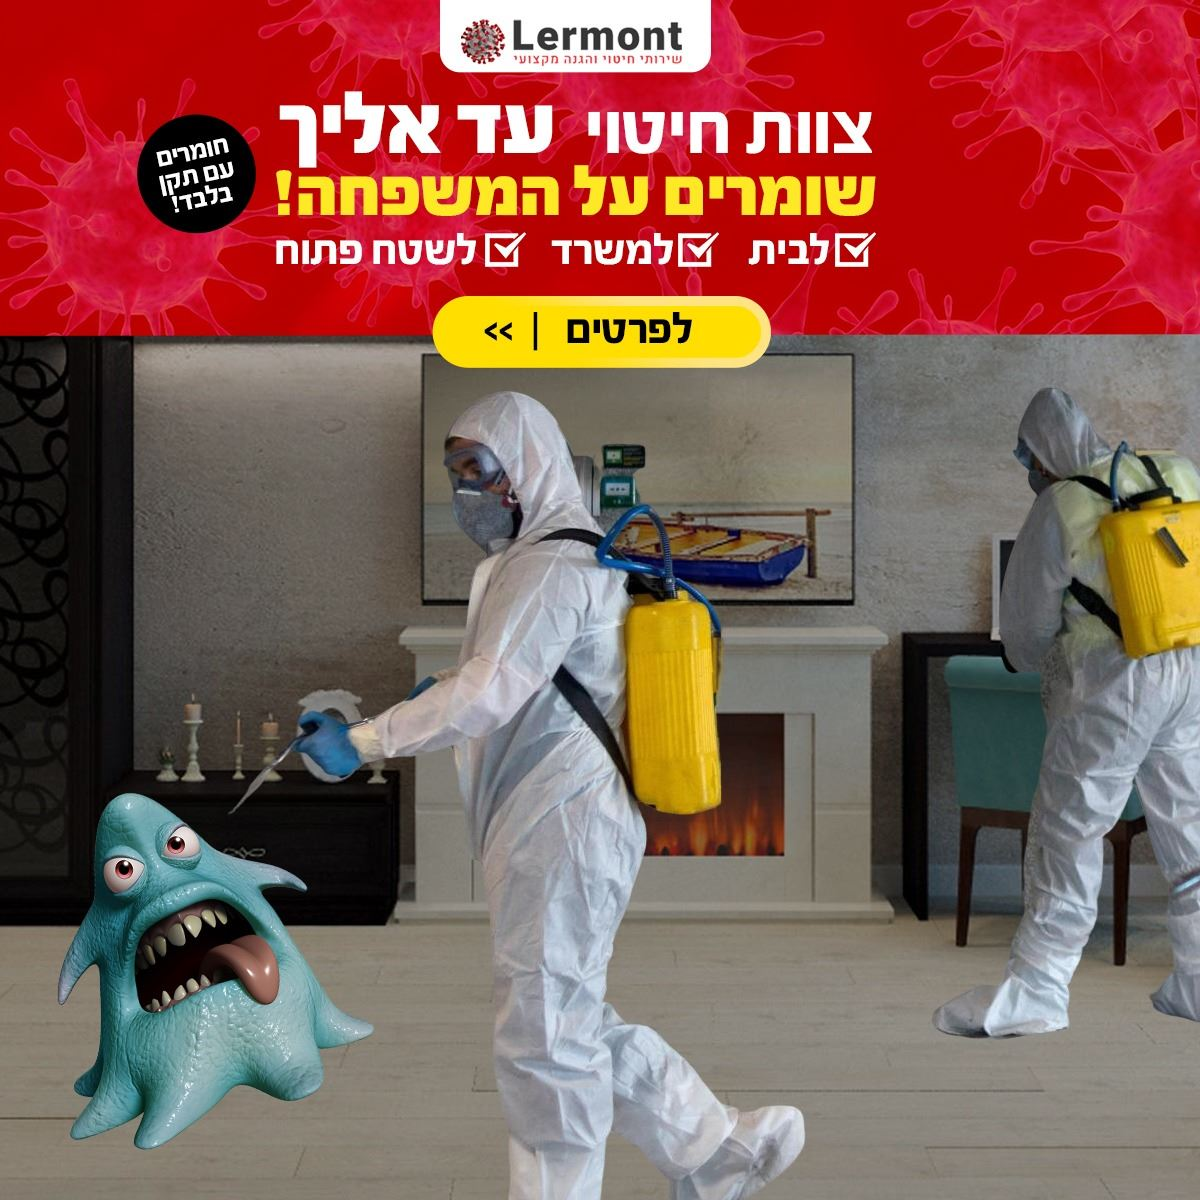 https://www.lermont.co.il/Uploads/ראשי/whatsapp image 2020-03-31 at 16.46.10.jpeg